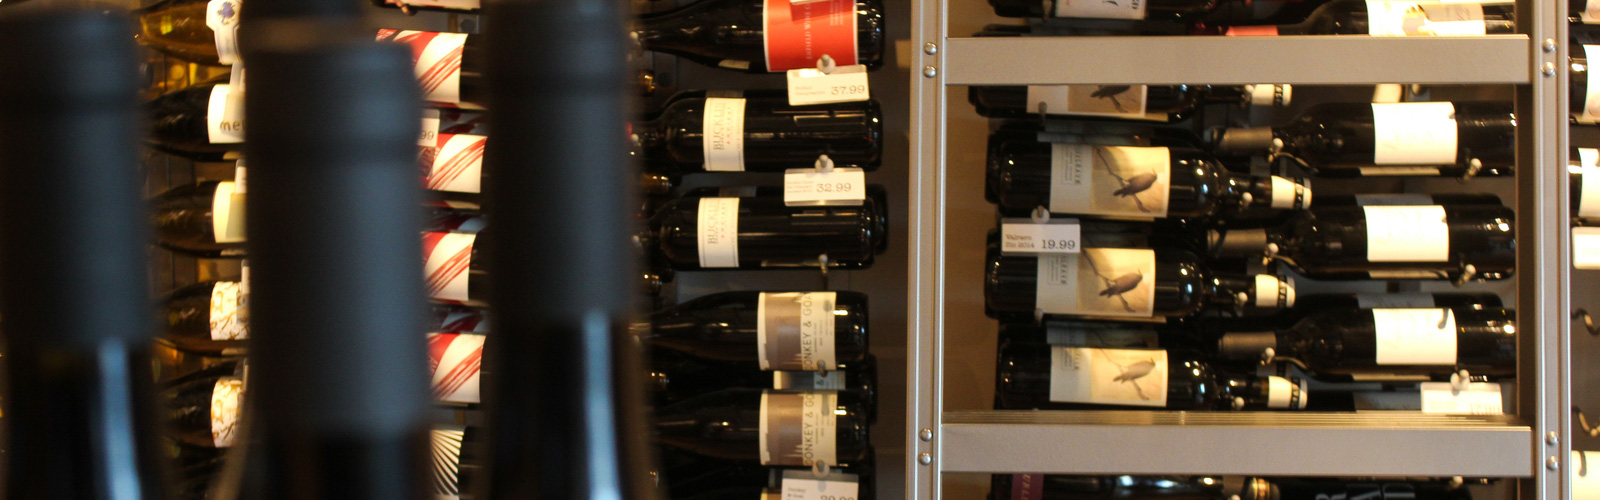 Winkler U0026 Samuels Shares Its Passion For Wine Through Classes, Its Wine  Cellar, And